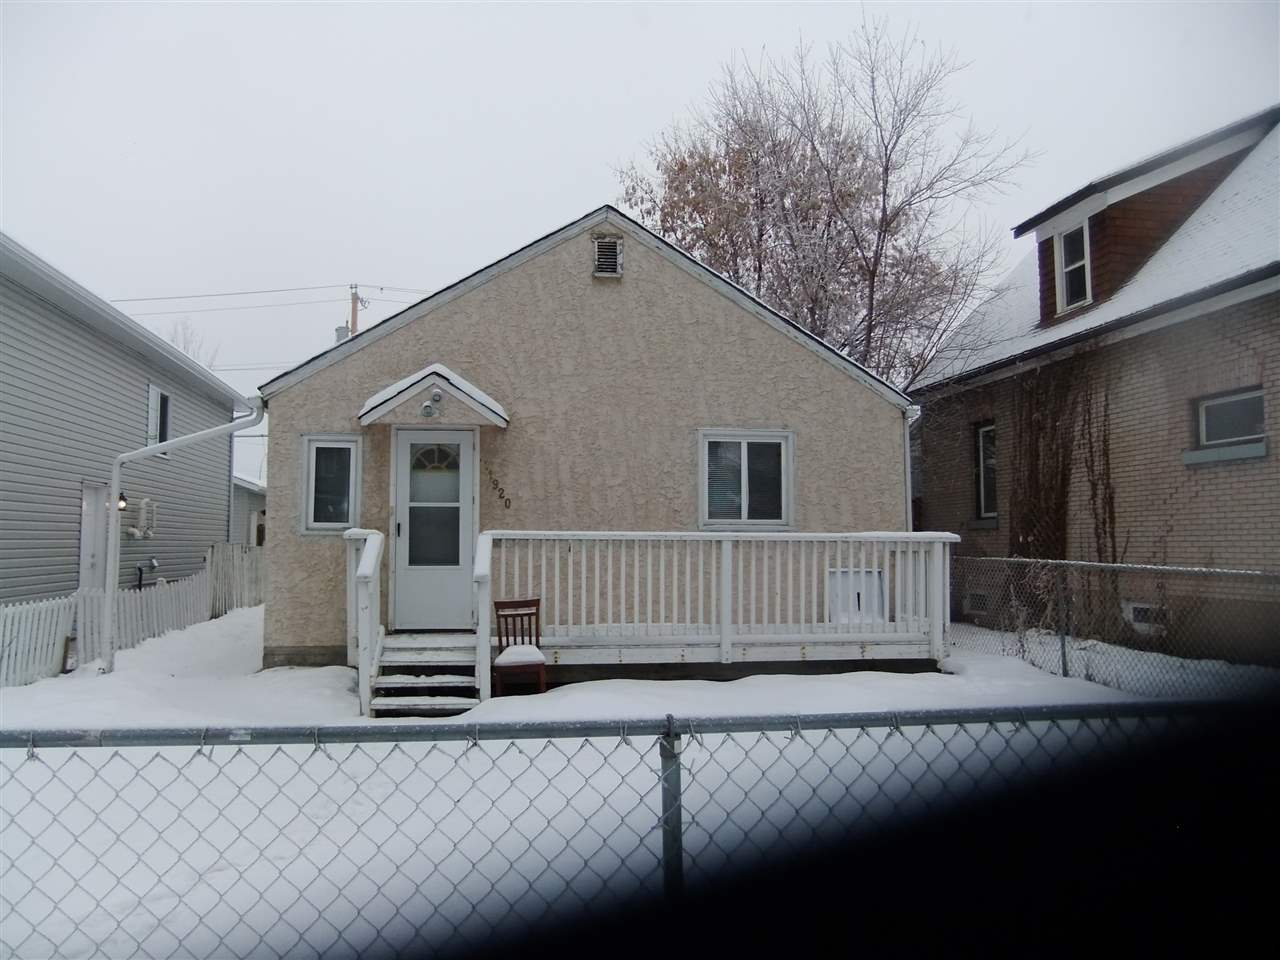 Approx 885 sq ft. 2 good size bedroom bungalow. Newer flooring, cabinetry, paint, furnace and HWT, new roof in 2017, newer 20x24 garage with insulated and dry walled , stucco exterior, good for 1st time buyer or investor, asking $189.900.